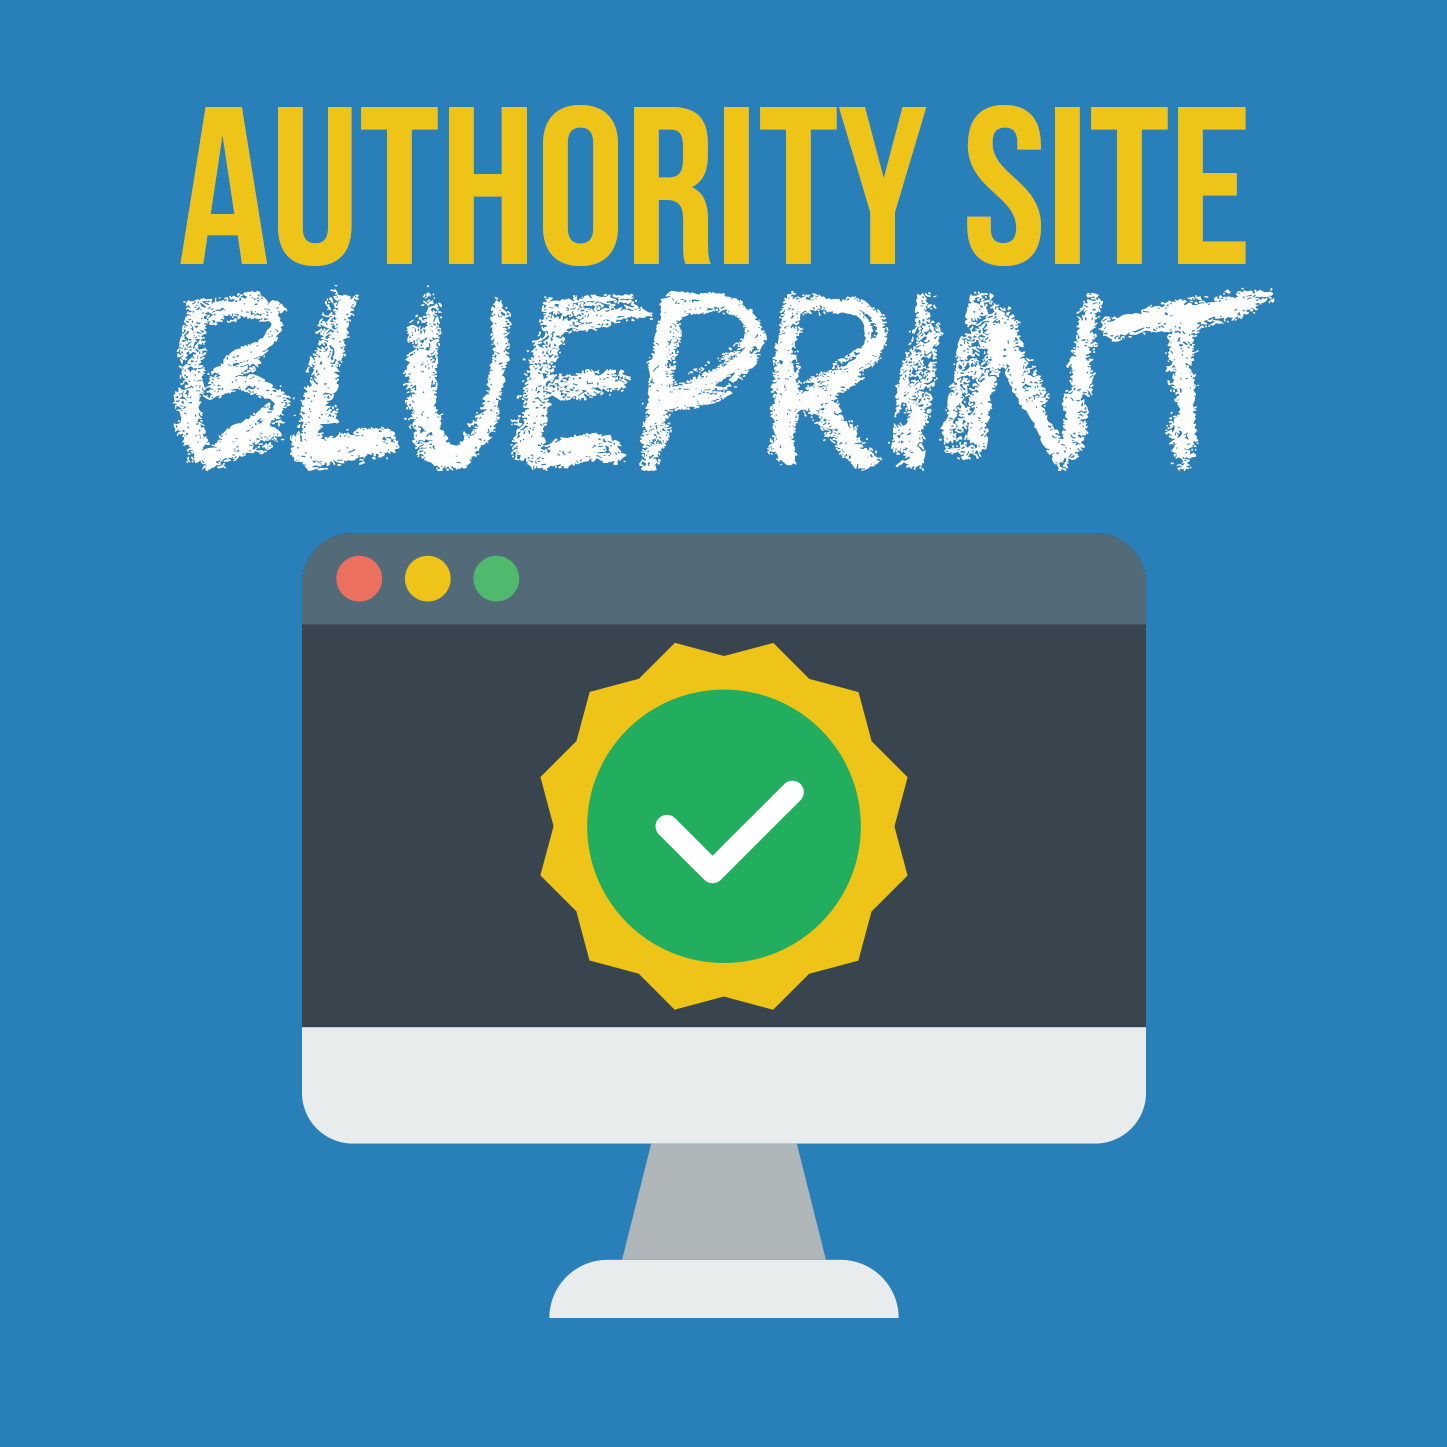 AuthoritySiteBp mrr Authority Site Blueprint